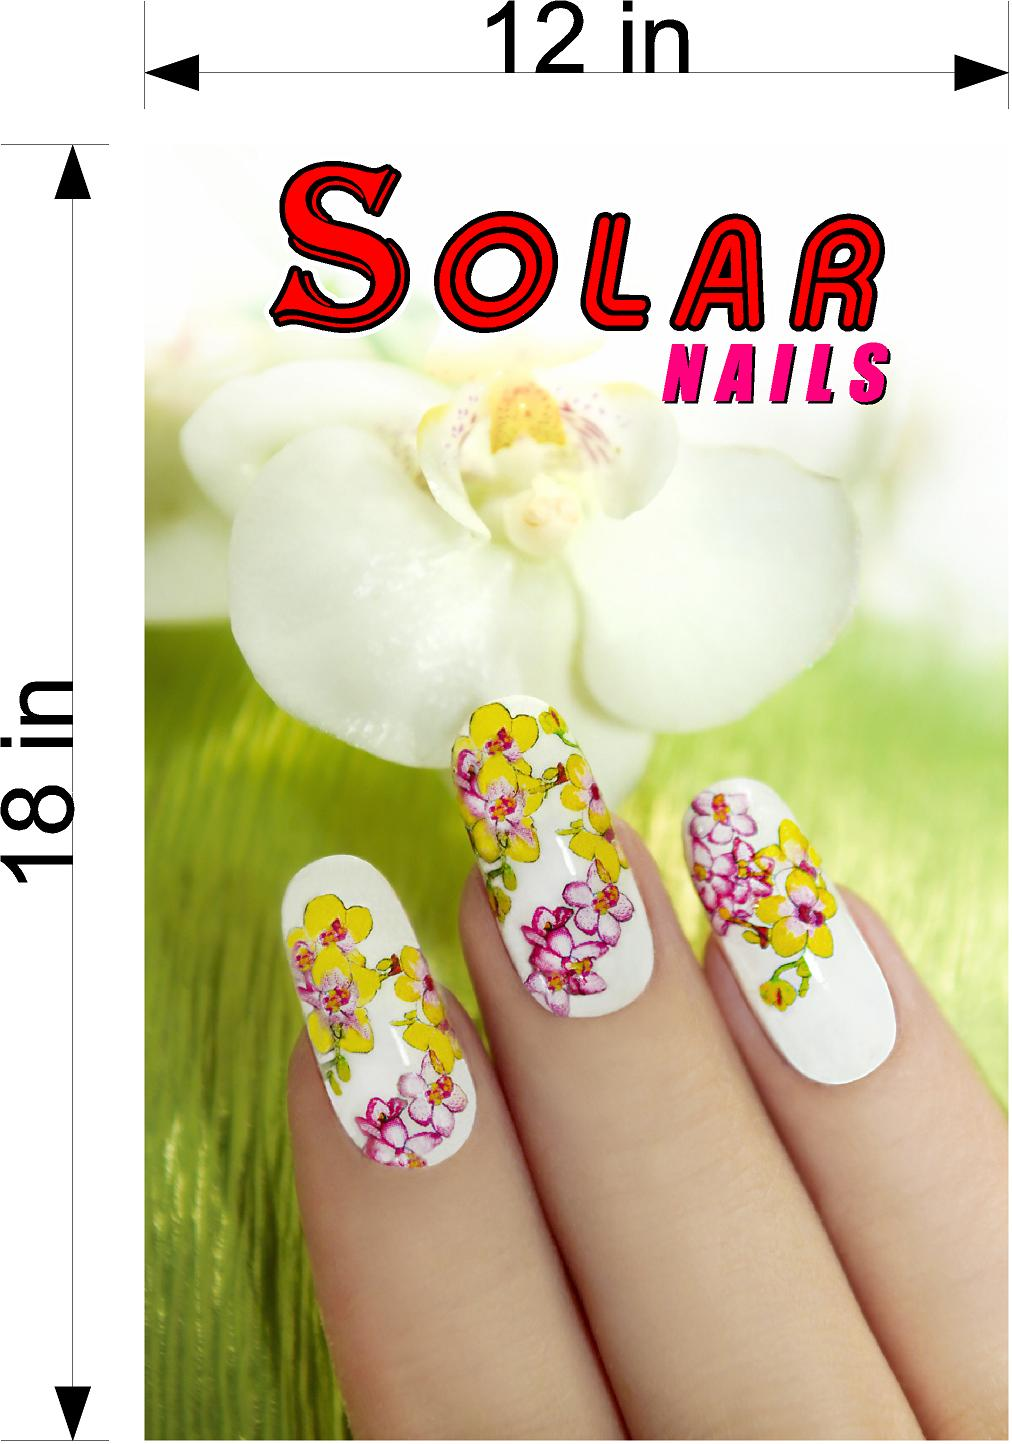 Solar 01 Wallpaper Fabric Poster Decal with Adhesive Backing Wall Sticker Decor Nail Salon Sign Vertical